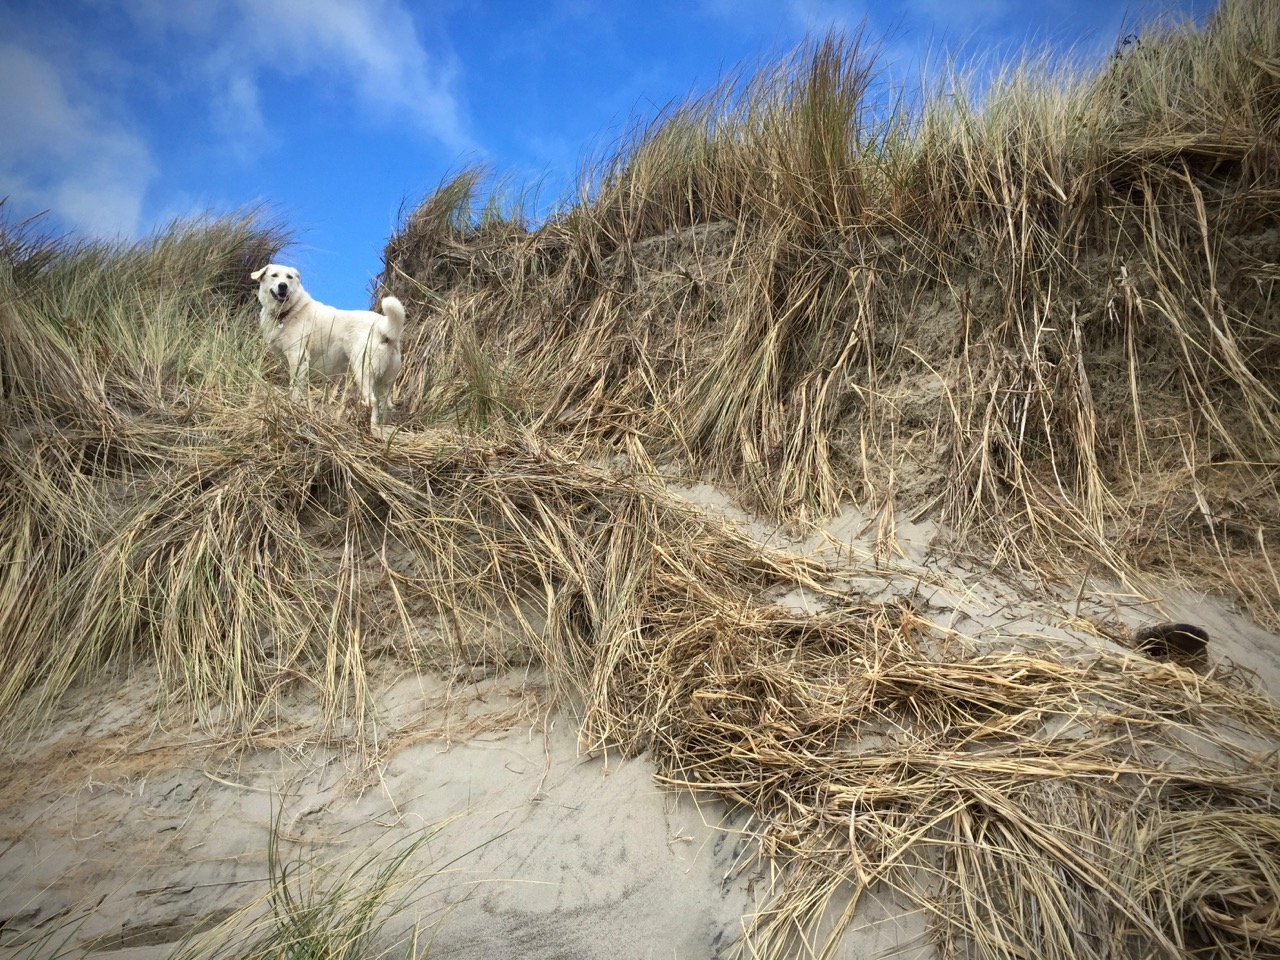 Kaylee, looking quite pleased, atop the correct dune.